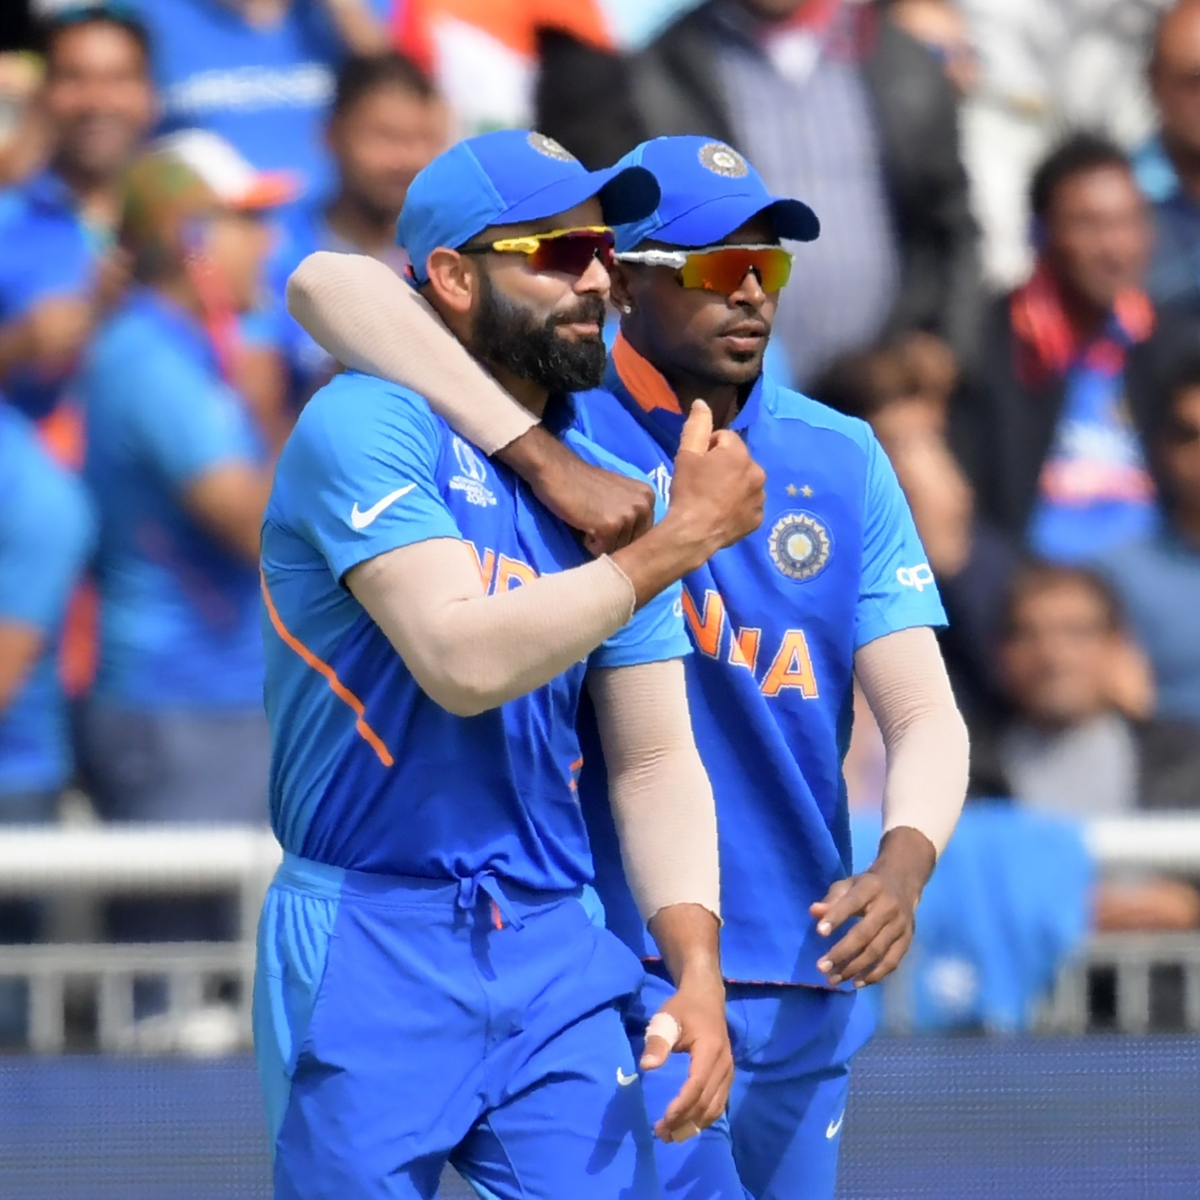 Virat Kohli announces arrival of baby girl: Here's a look at Indian cricketers blessed with their first child recently